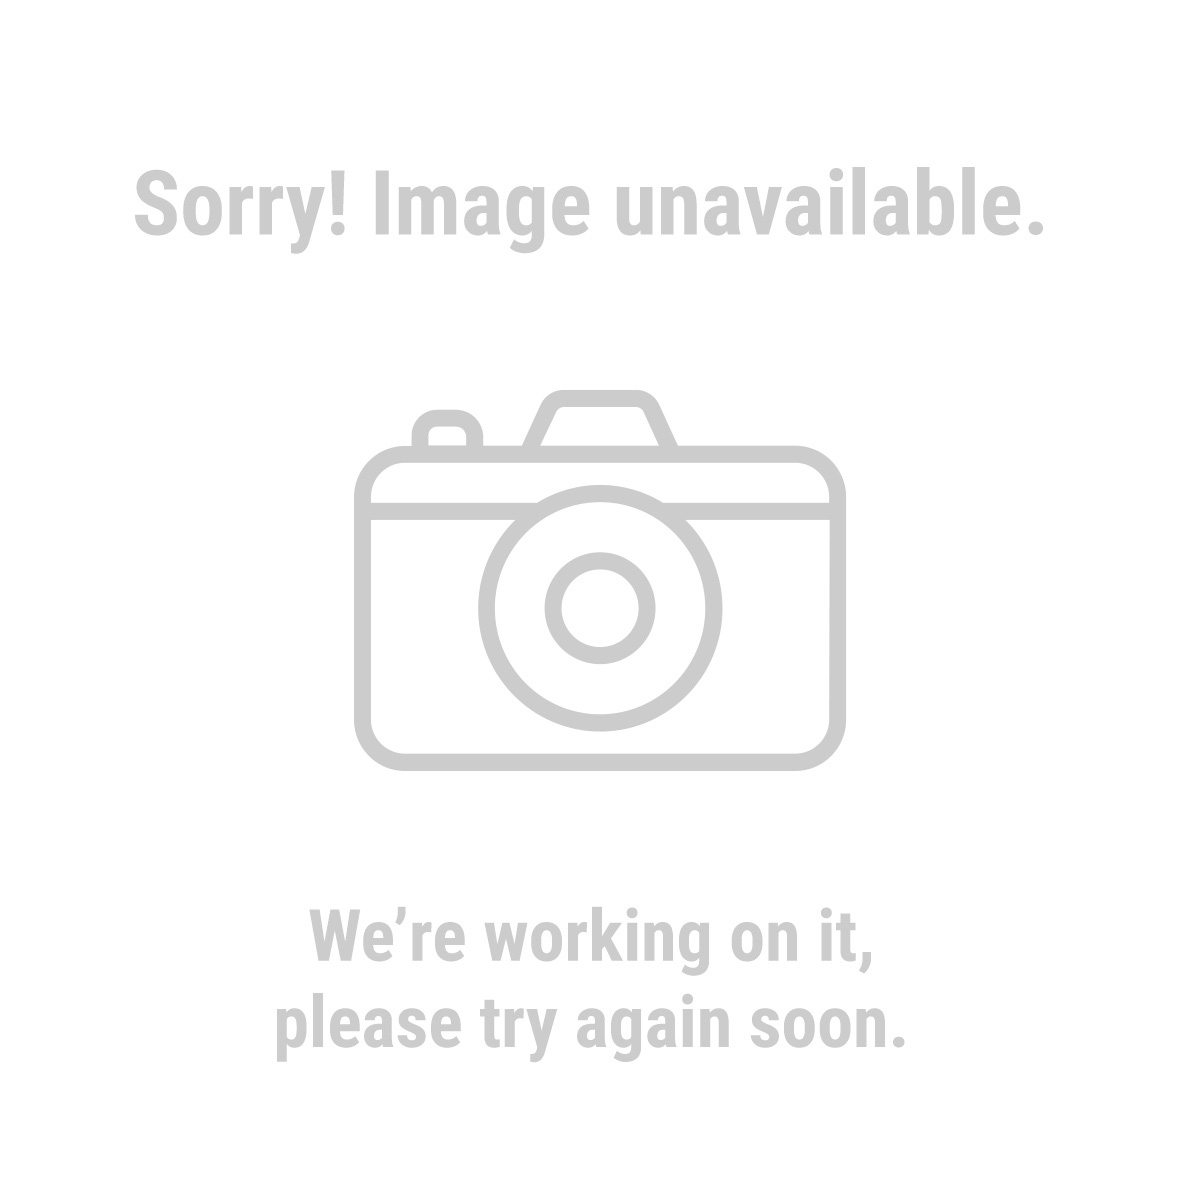 Central Pneumatic 67501 Portable Air Compressor, 2 Horsepower, 8 Gallon, 125 PSI